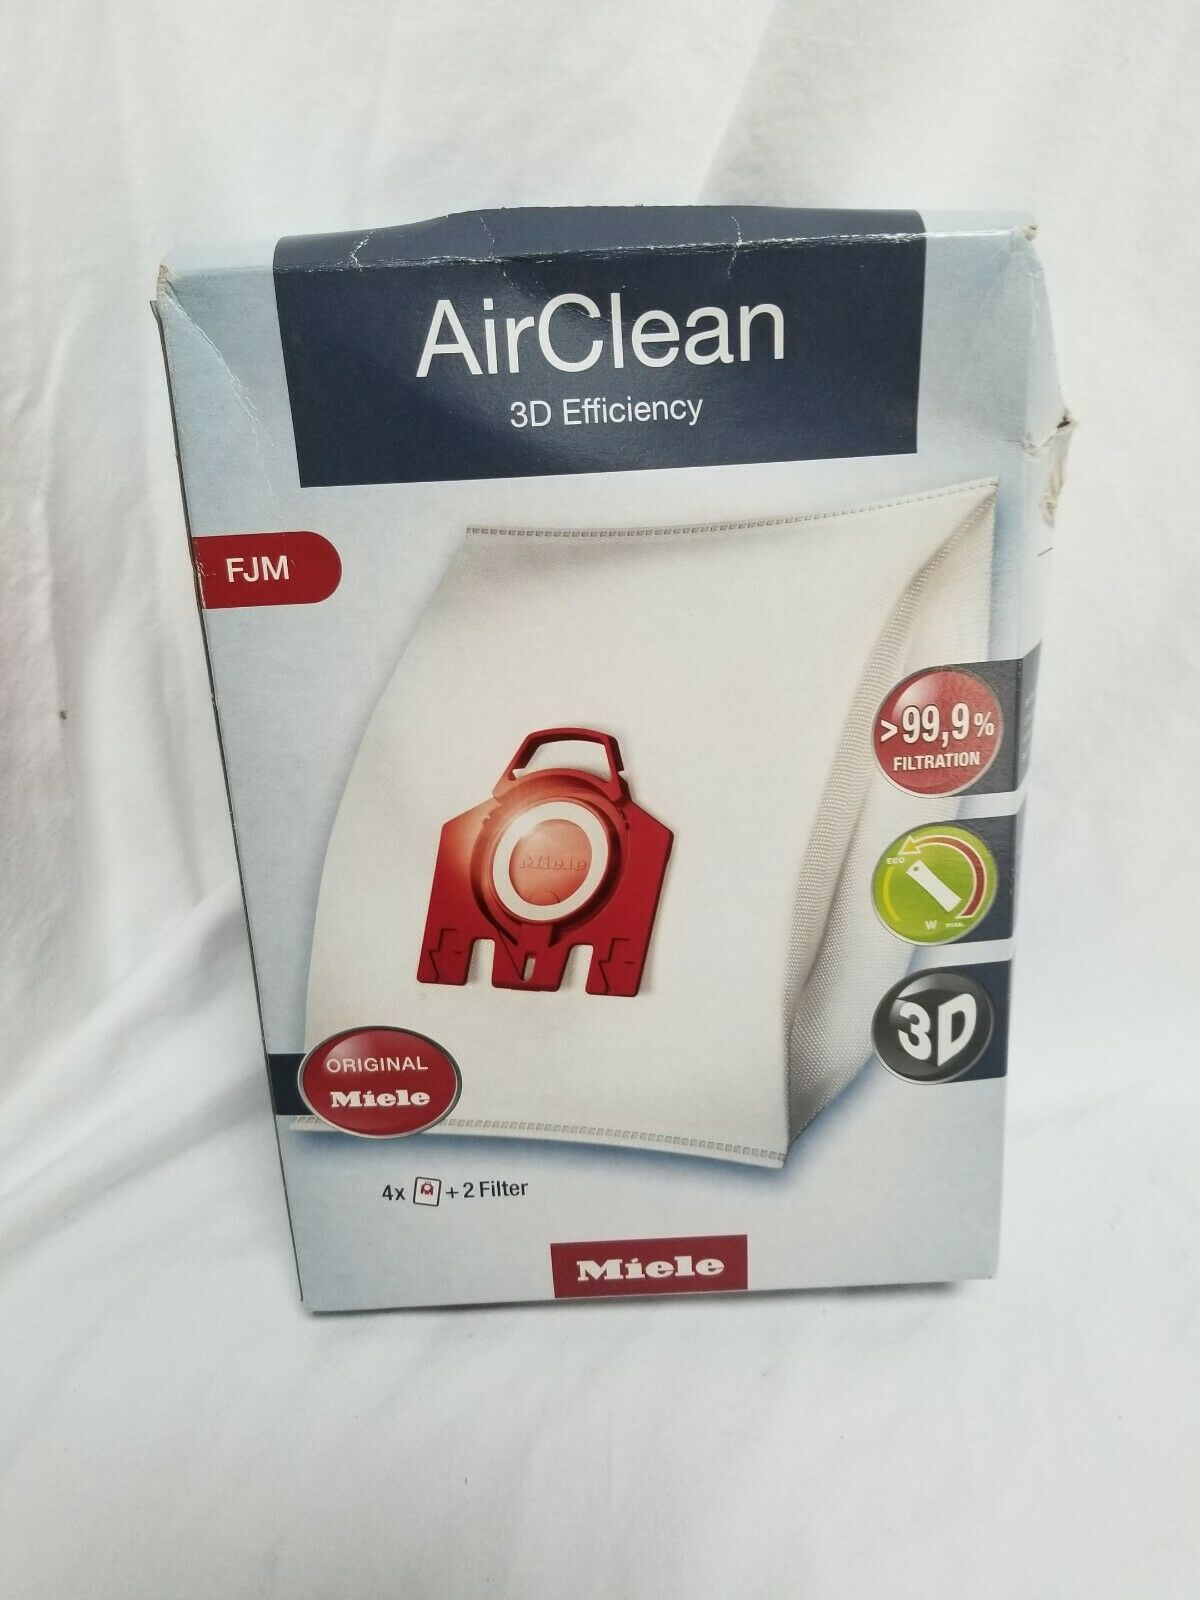 Miele Type FJM Vacuum Cleaner Bag AirClean 3D Efficiency Canister Bags - $13.85